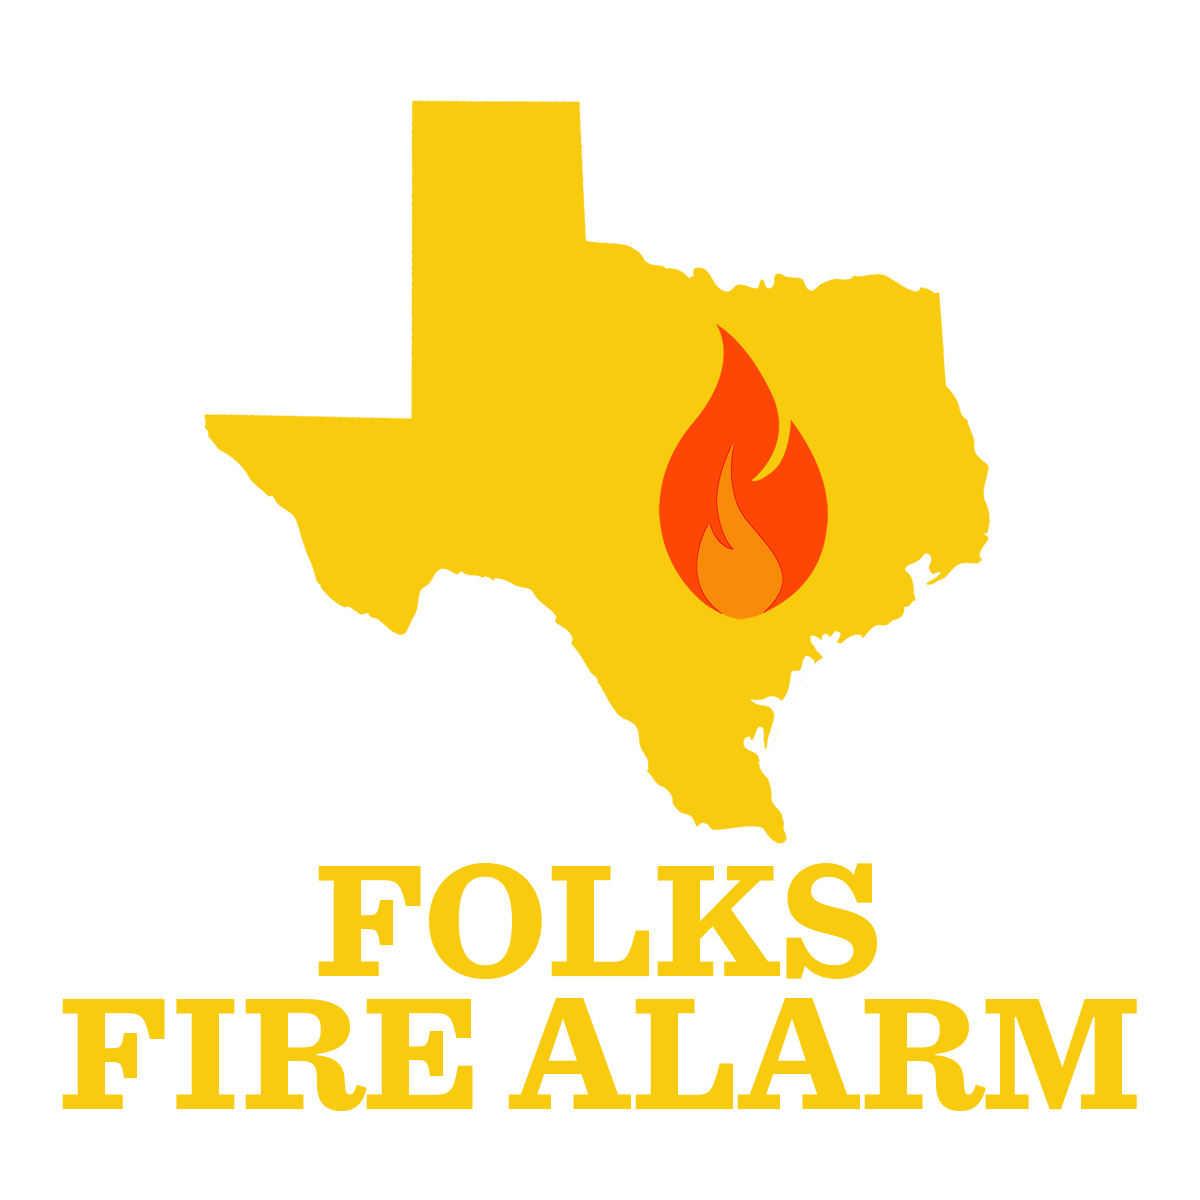 FOLKS FIRE ALARM